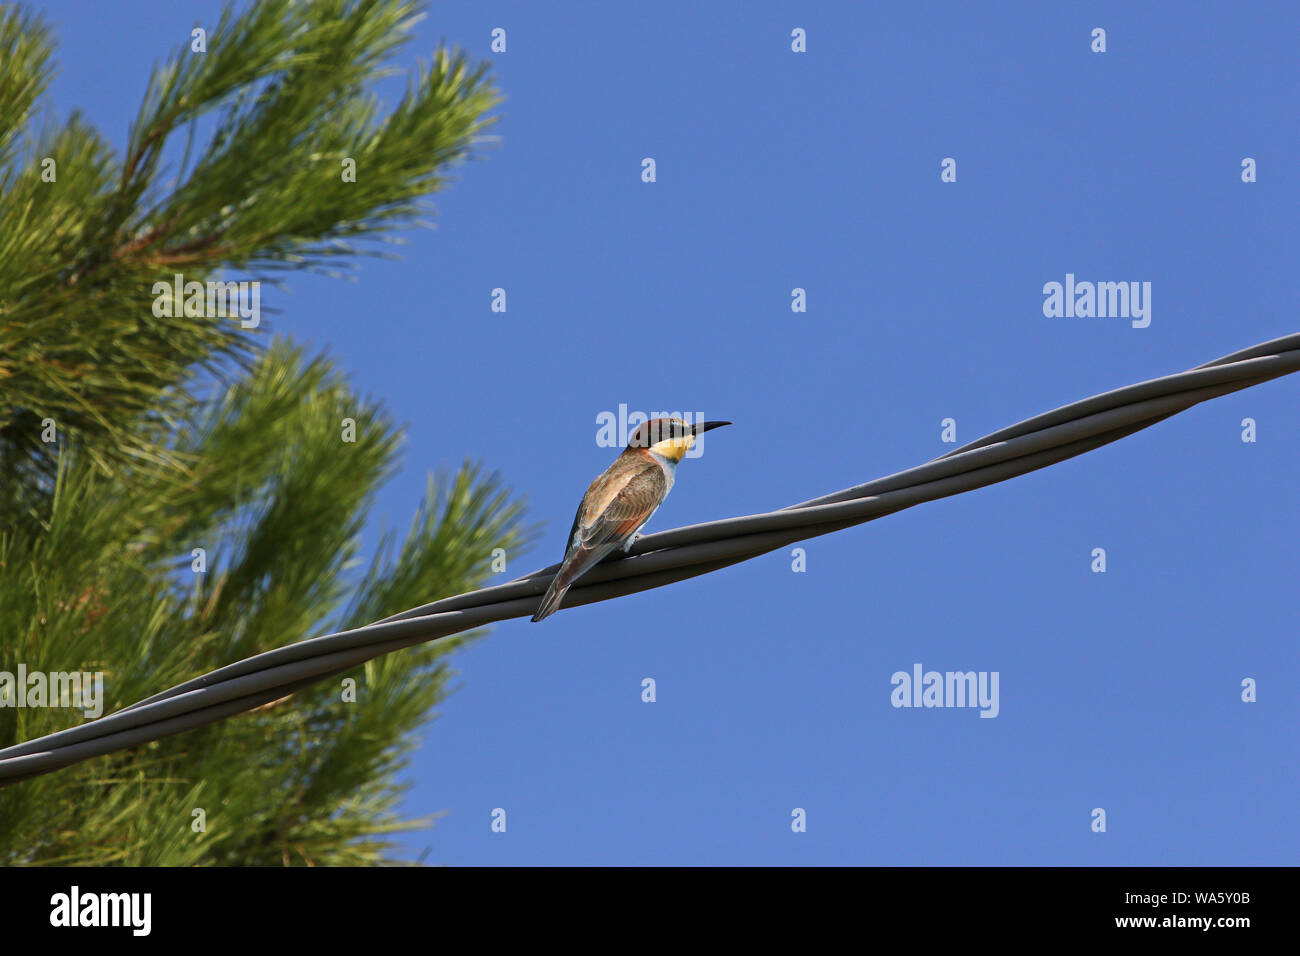 European or African bee eater or bee-eater Latin merops apiaster family meropidae gruccione perched on a wire near a Mediterranean pine in Italy Stock Photo